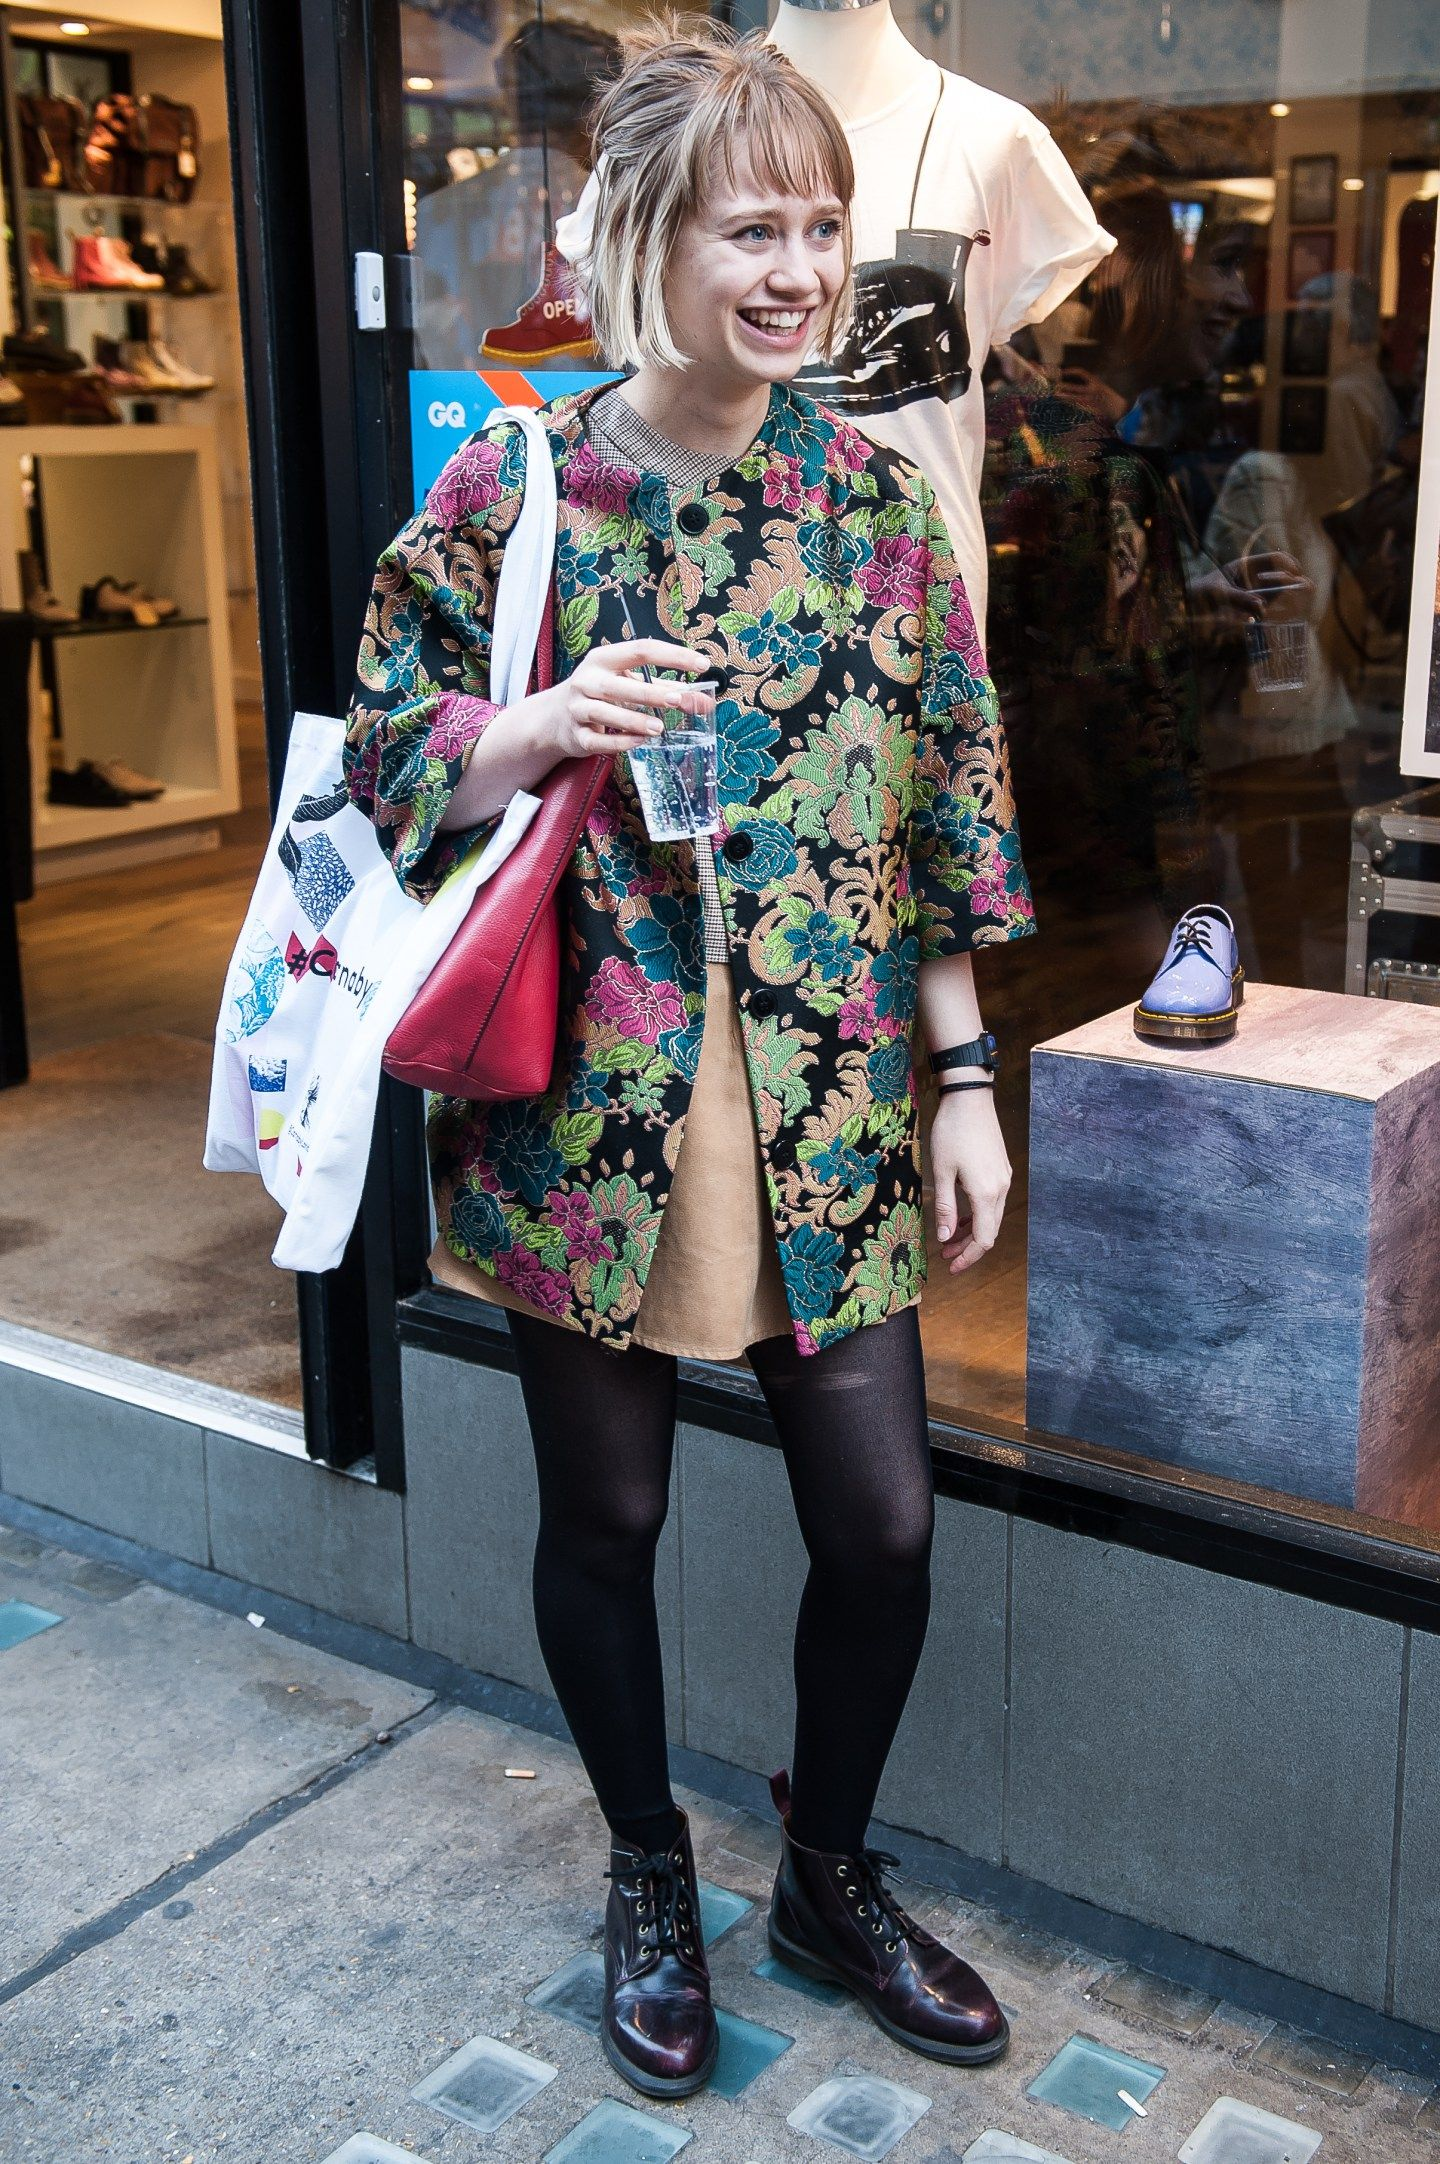 GQ SHOPPING EVENT IN DR. MARTENS CARNABY STREET STORE ...